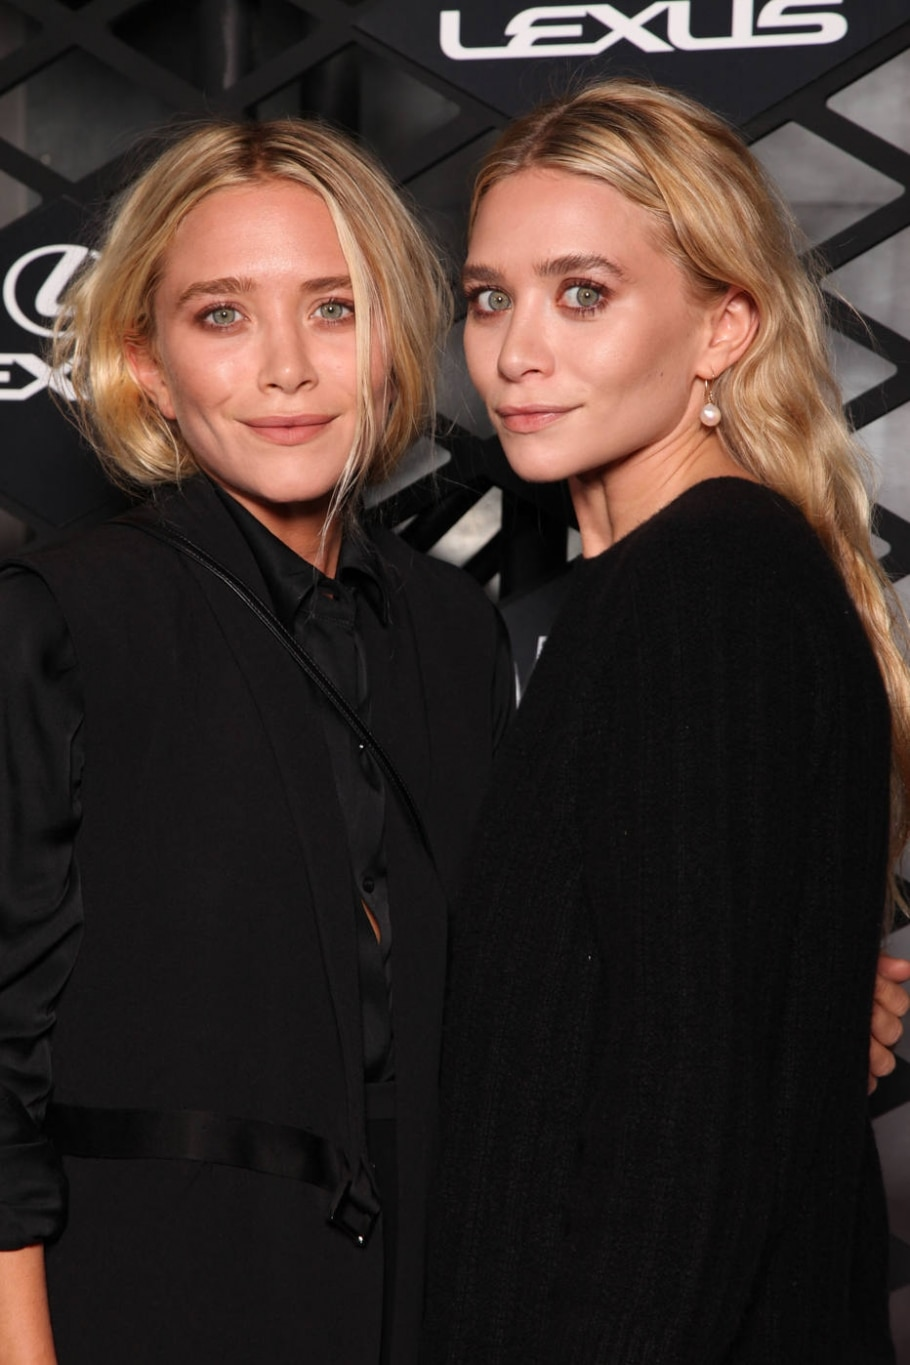 Mary-Kate e Ashley Olsen - Omar Vega/Invision for Lexus/AP Images